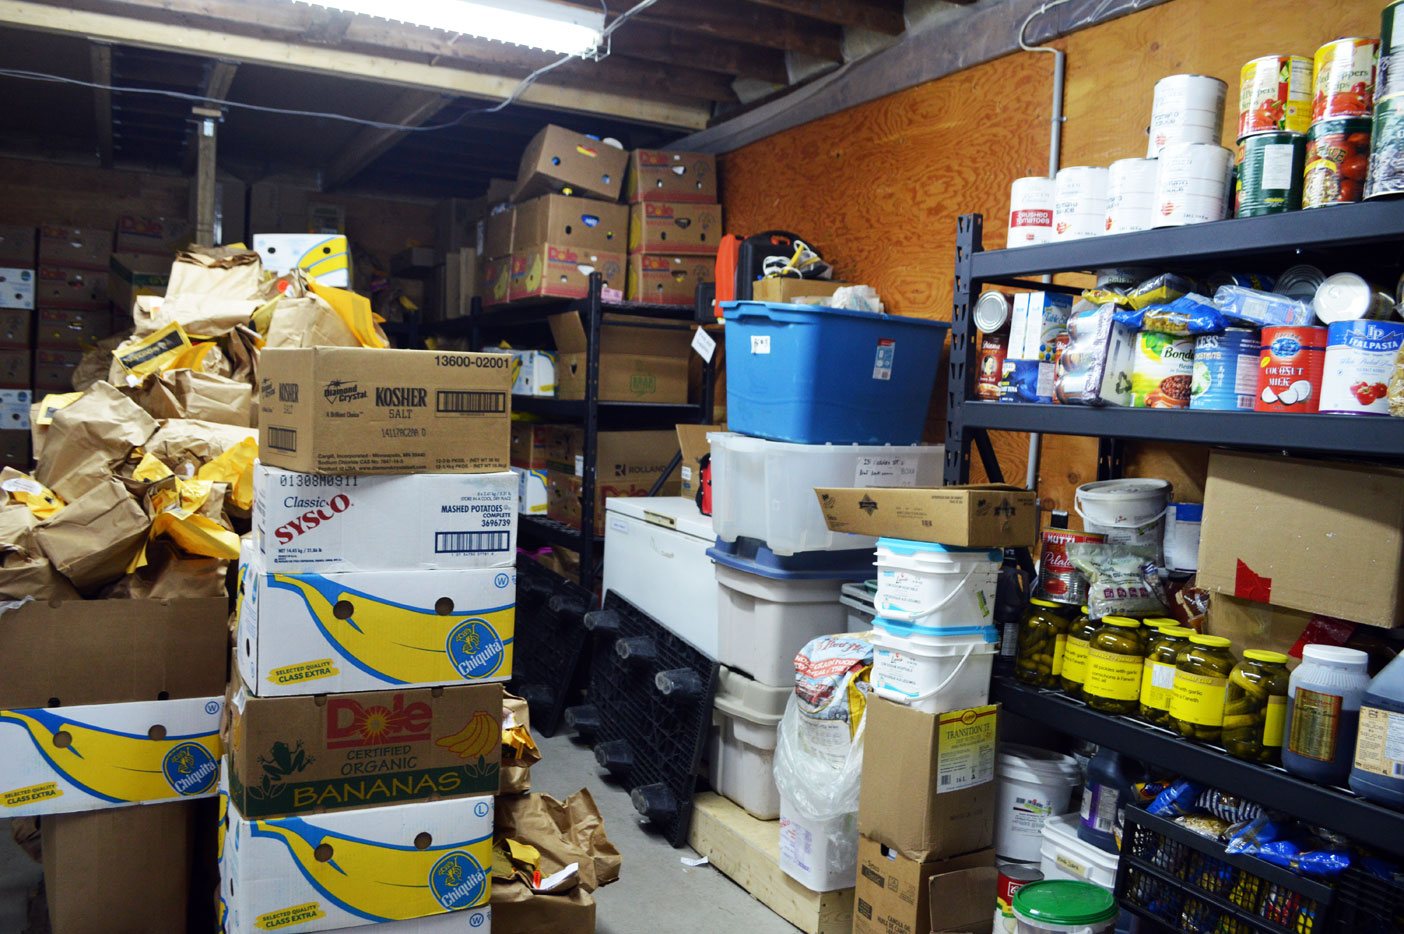 This is where it all happens. The storage room at the food bank is organized and has a zero waste policy. Nothing goes to the landfill and what isn't used goes somewhere where it will be.